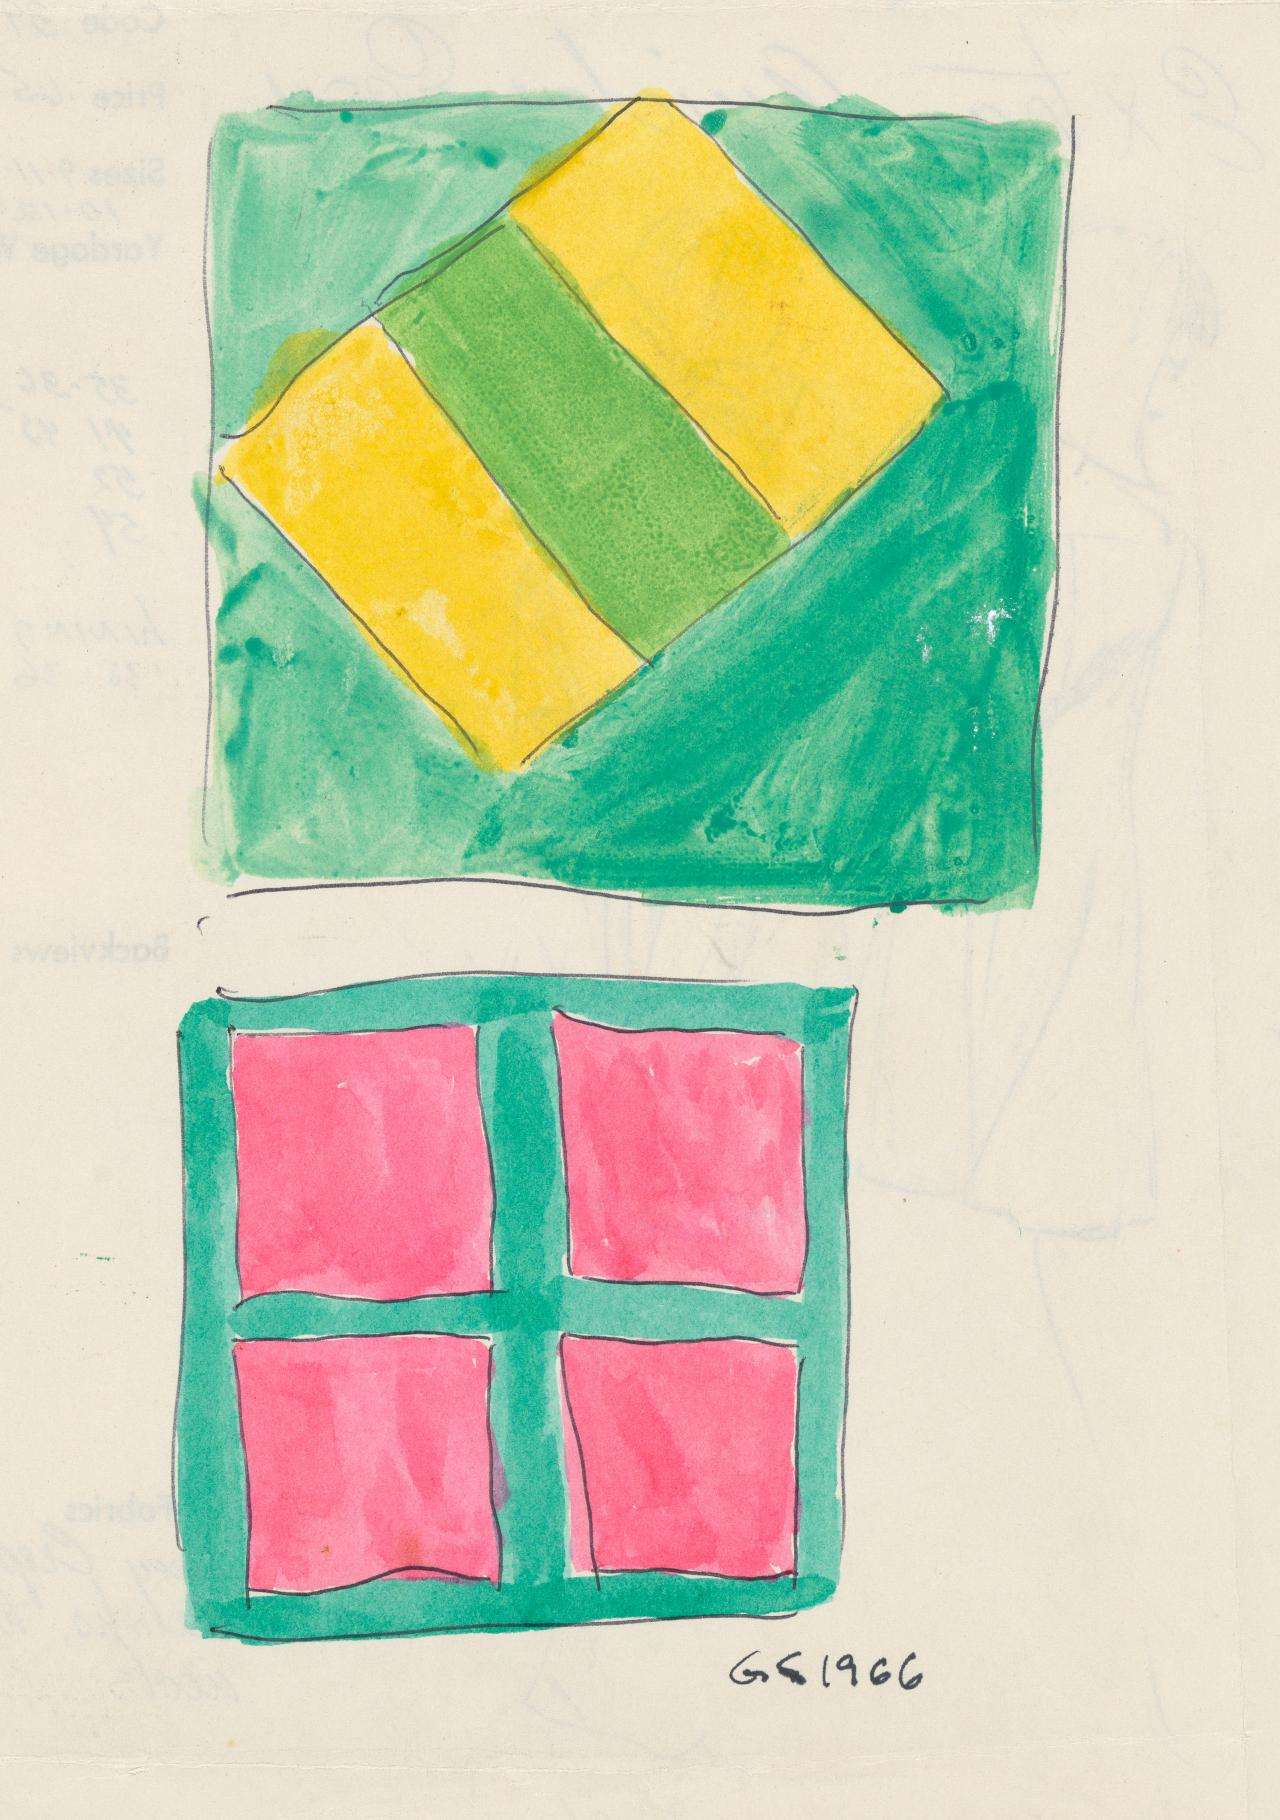 Untitled (Two abstract geometric designs)